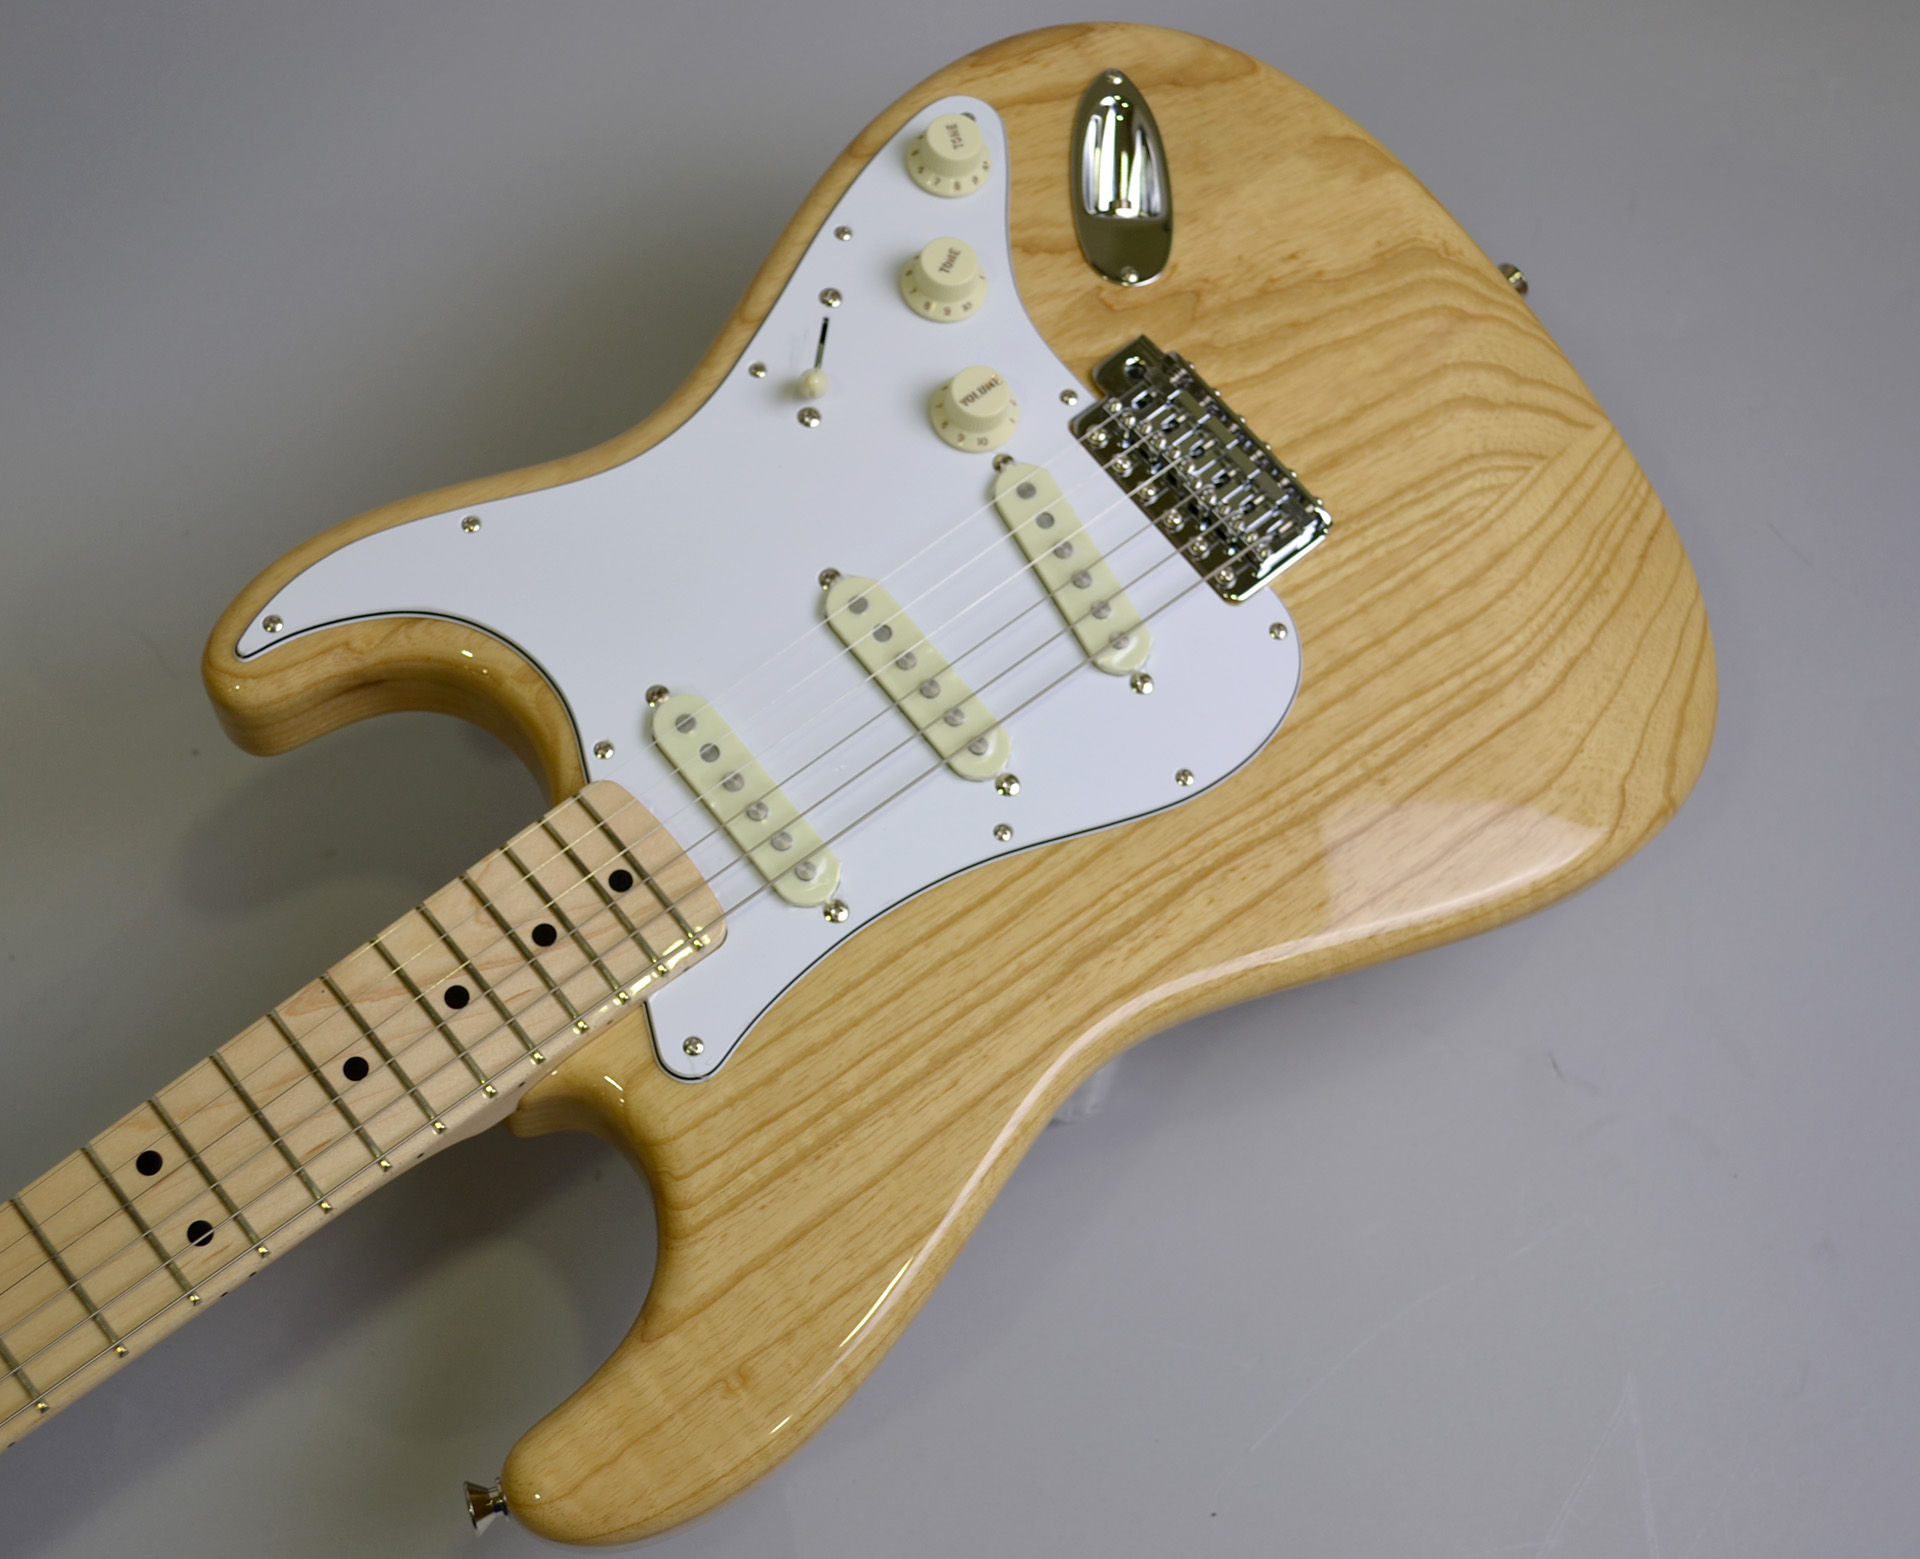 MADE IN JAPAN TRADITIONAL 70S STRATCASTER ASH MAPLEのケース・その他画像